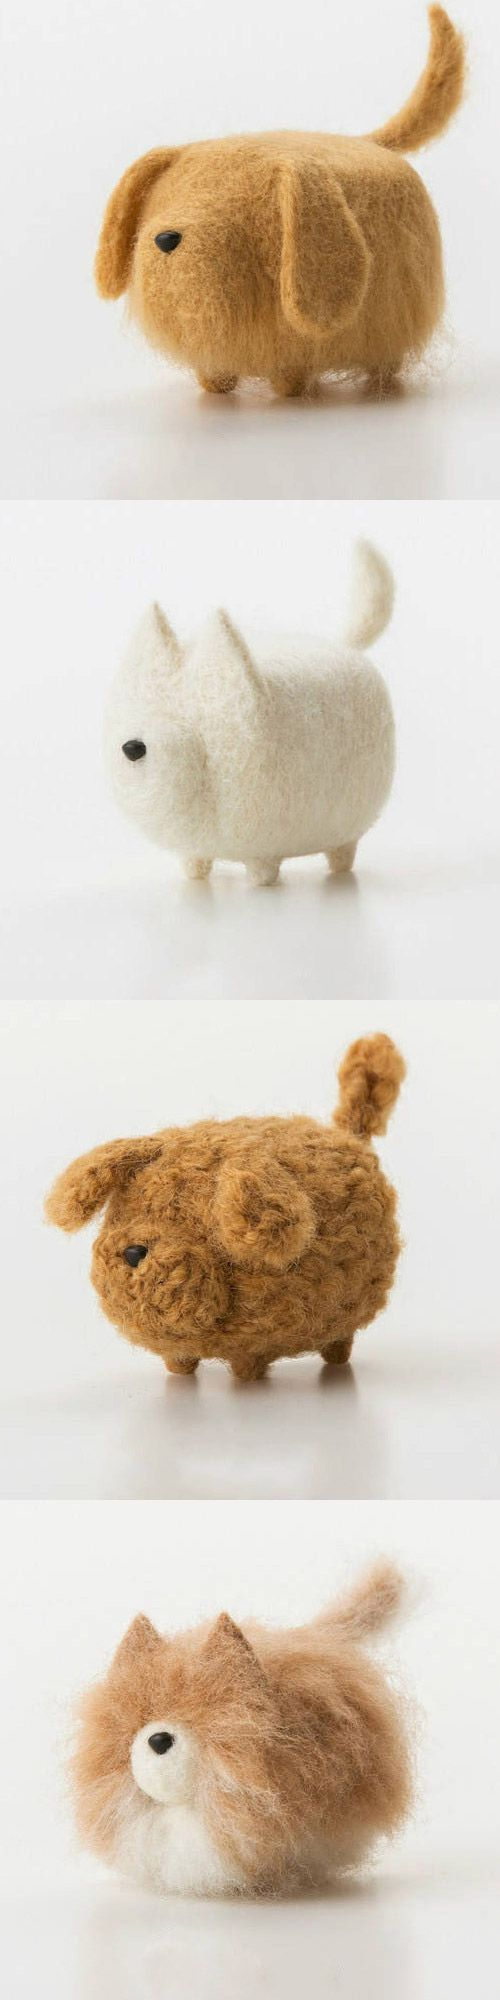 http://www.feltify.com/products/handmade-felted-felting-project-cute-animal-dogs-puppy-felted-wool-doll